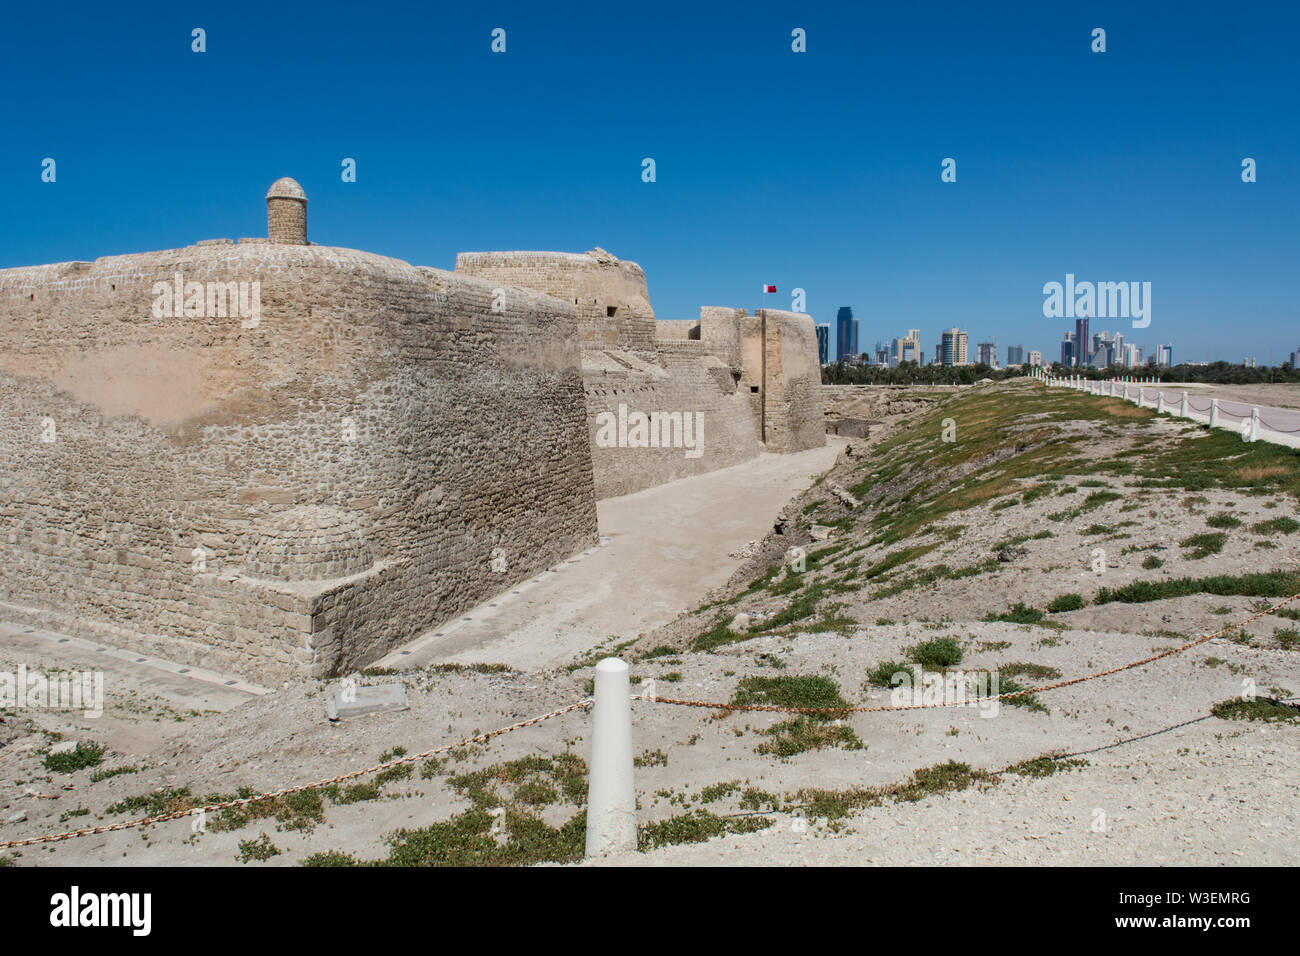 Al Qala, Bahrain, Apr 20th 2017 - The Qal'at al-Bahrain Fort, also known as the Bahrain Fort or Portuguese Fort. - Stock Image